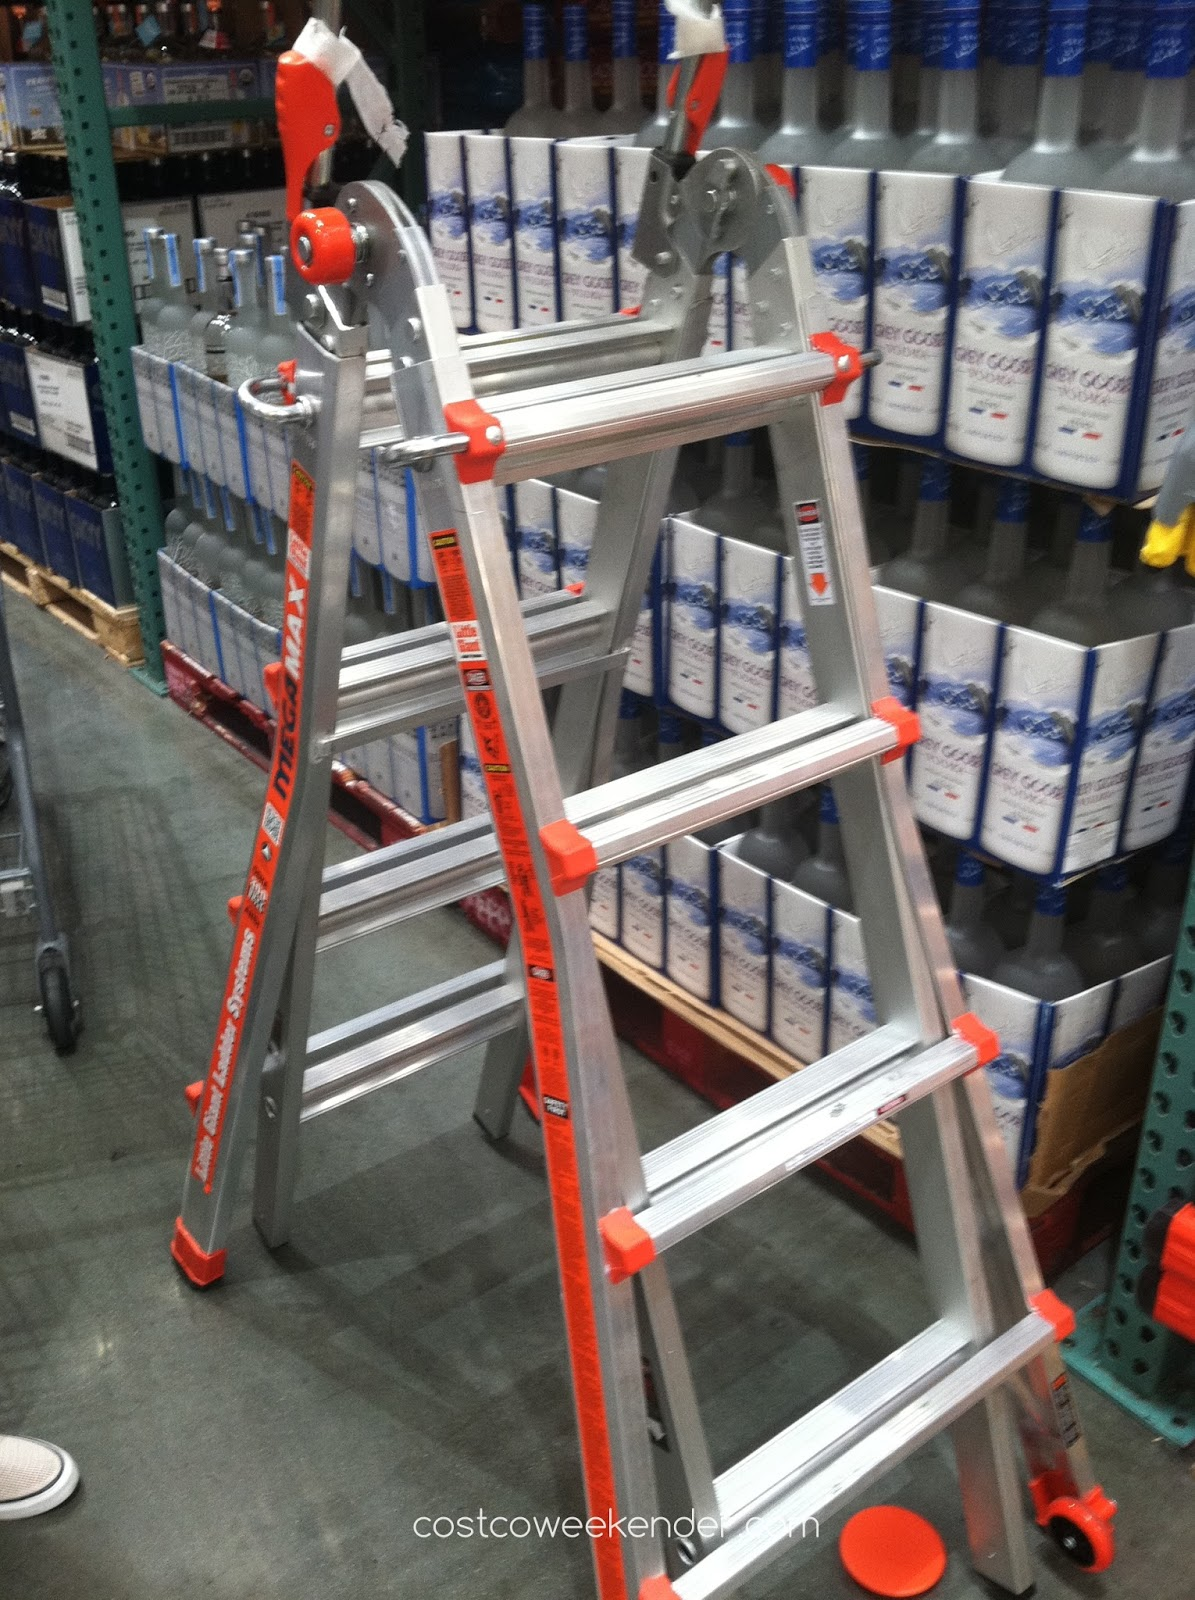 Gain access and get to hard to reach places with the Little Giant Megamax Ladder